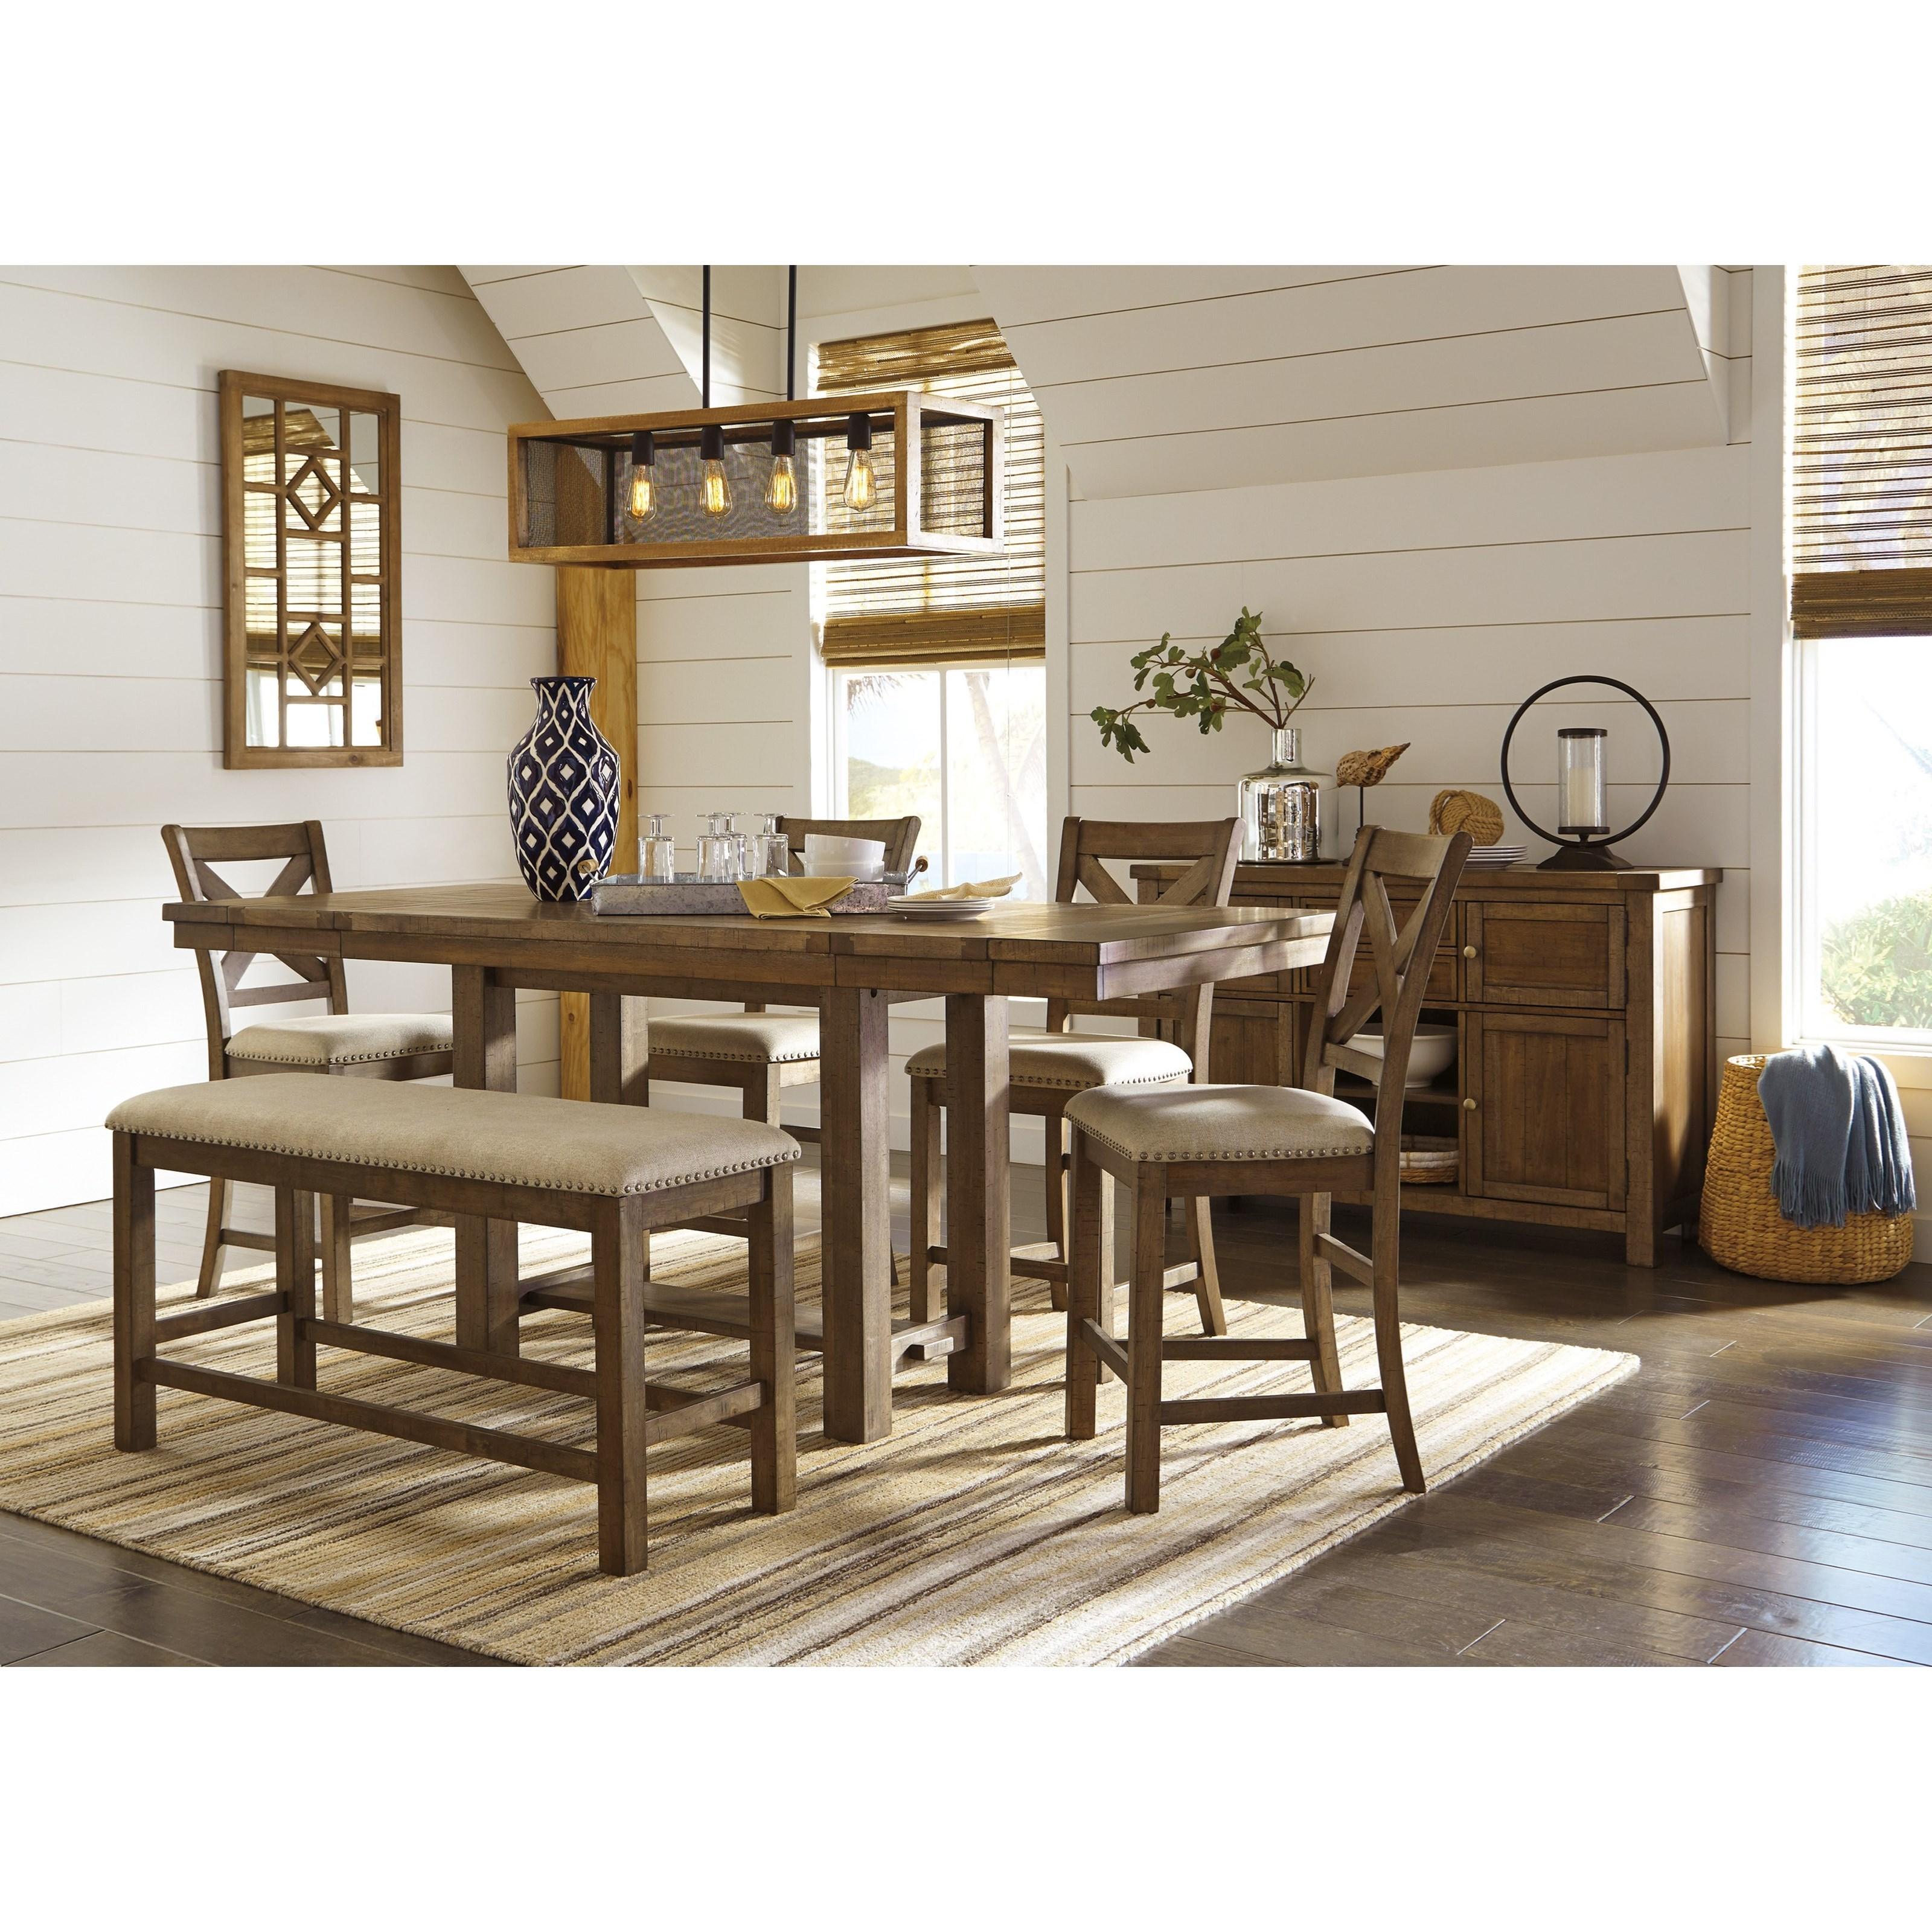 Ashley Furniture Signature Collection: Ashley Signature Design Moriville D631-124 Upholstered